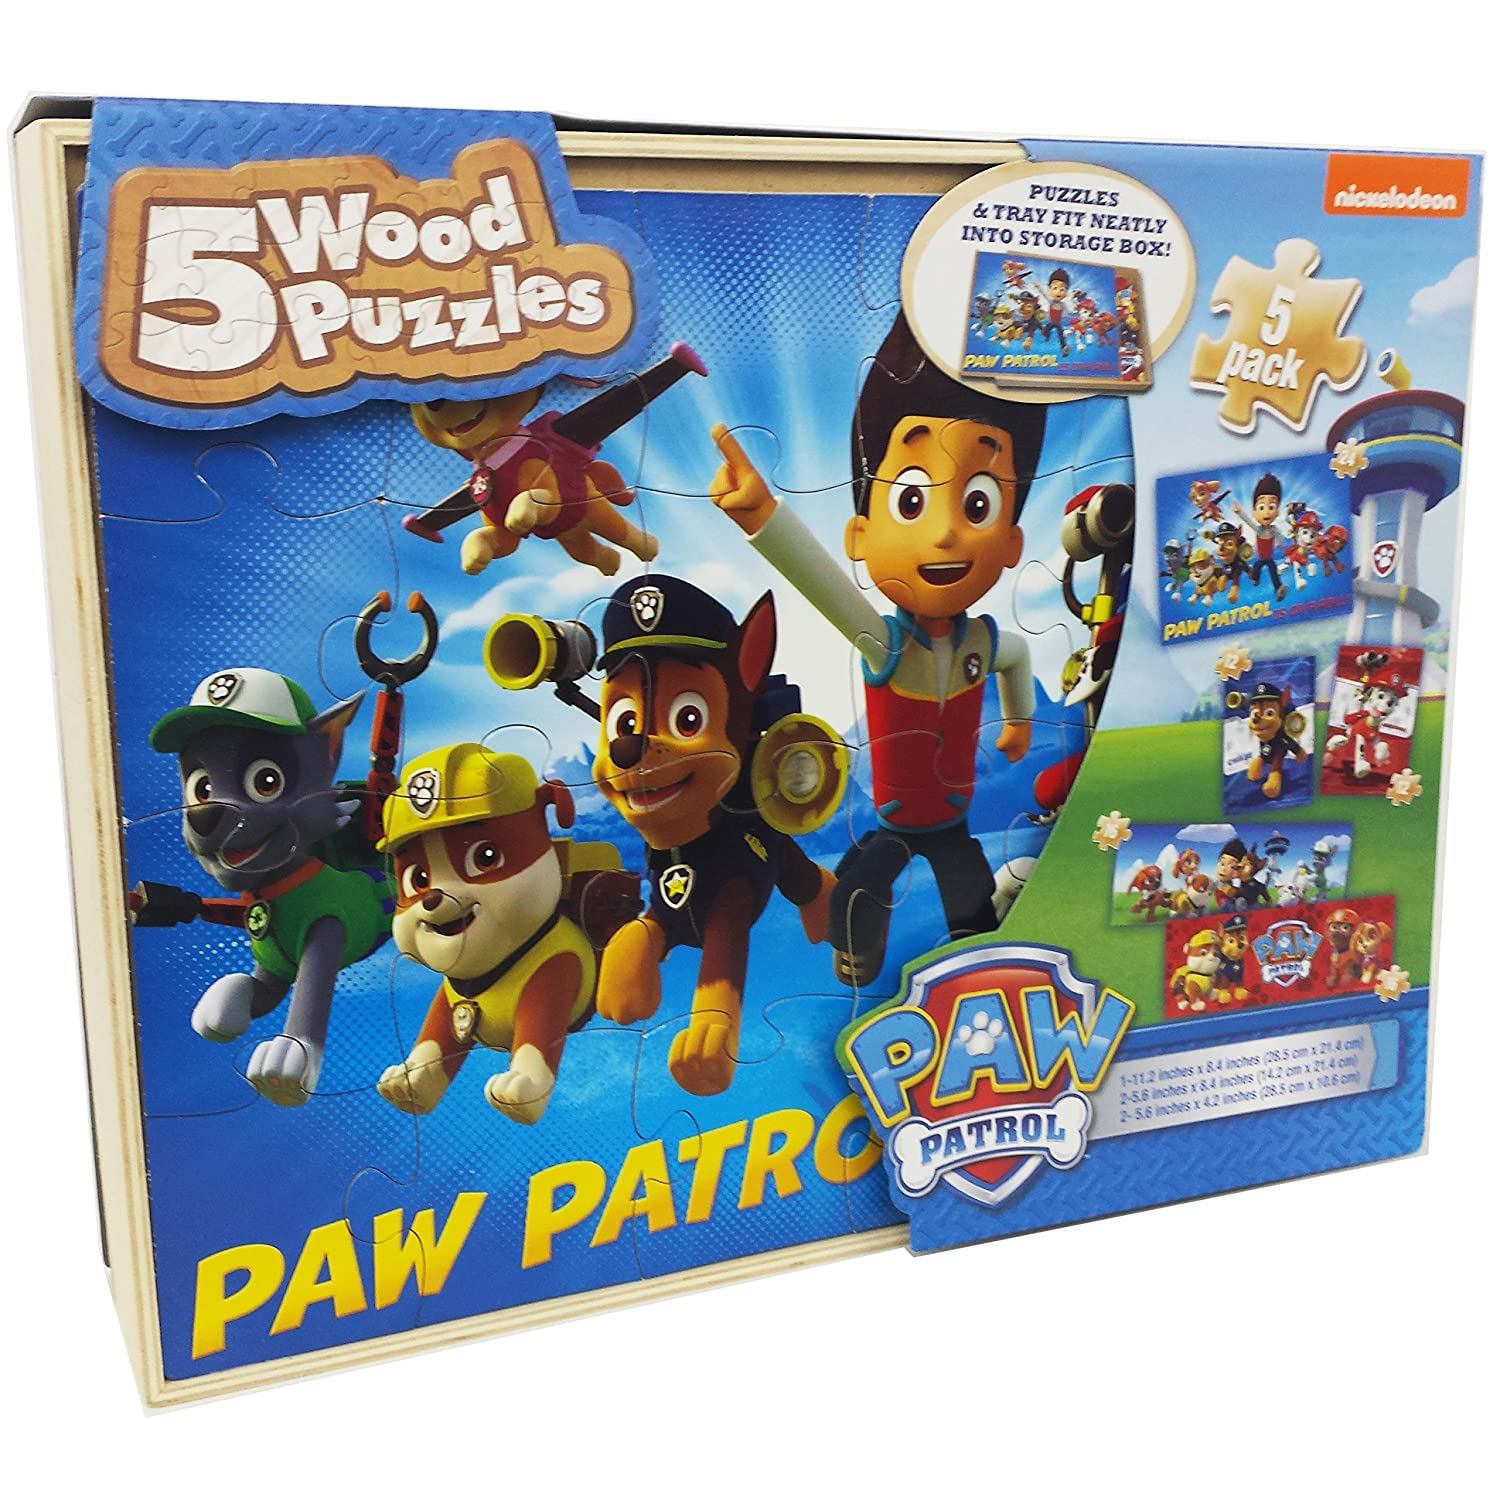 Paw Patrol Kids Toy Organizer Bin Children S Storage Box: Paw Patrol 5 Wood Puzzles Assembly Toy Kids Gift Play Set